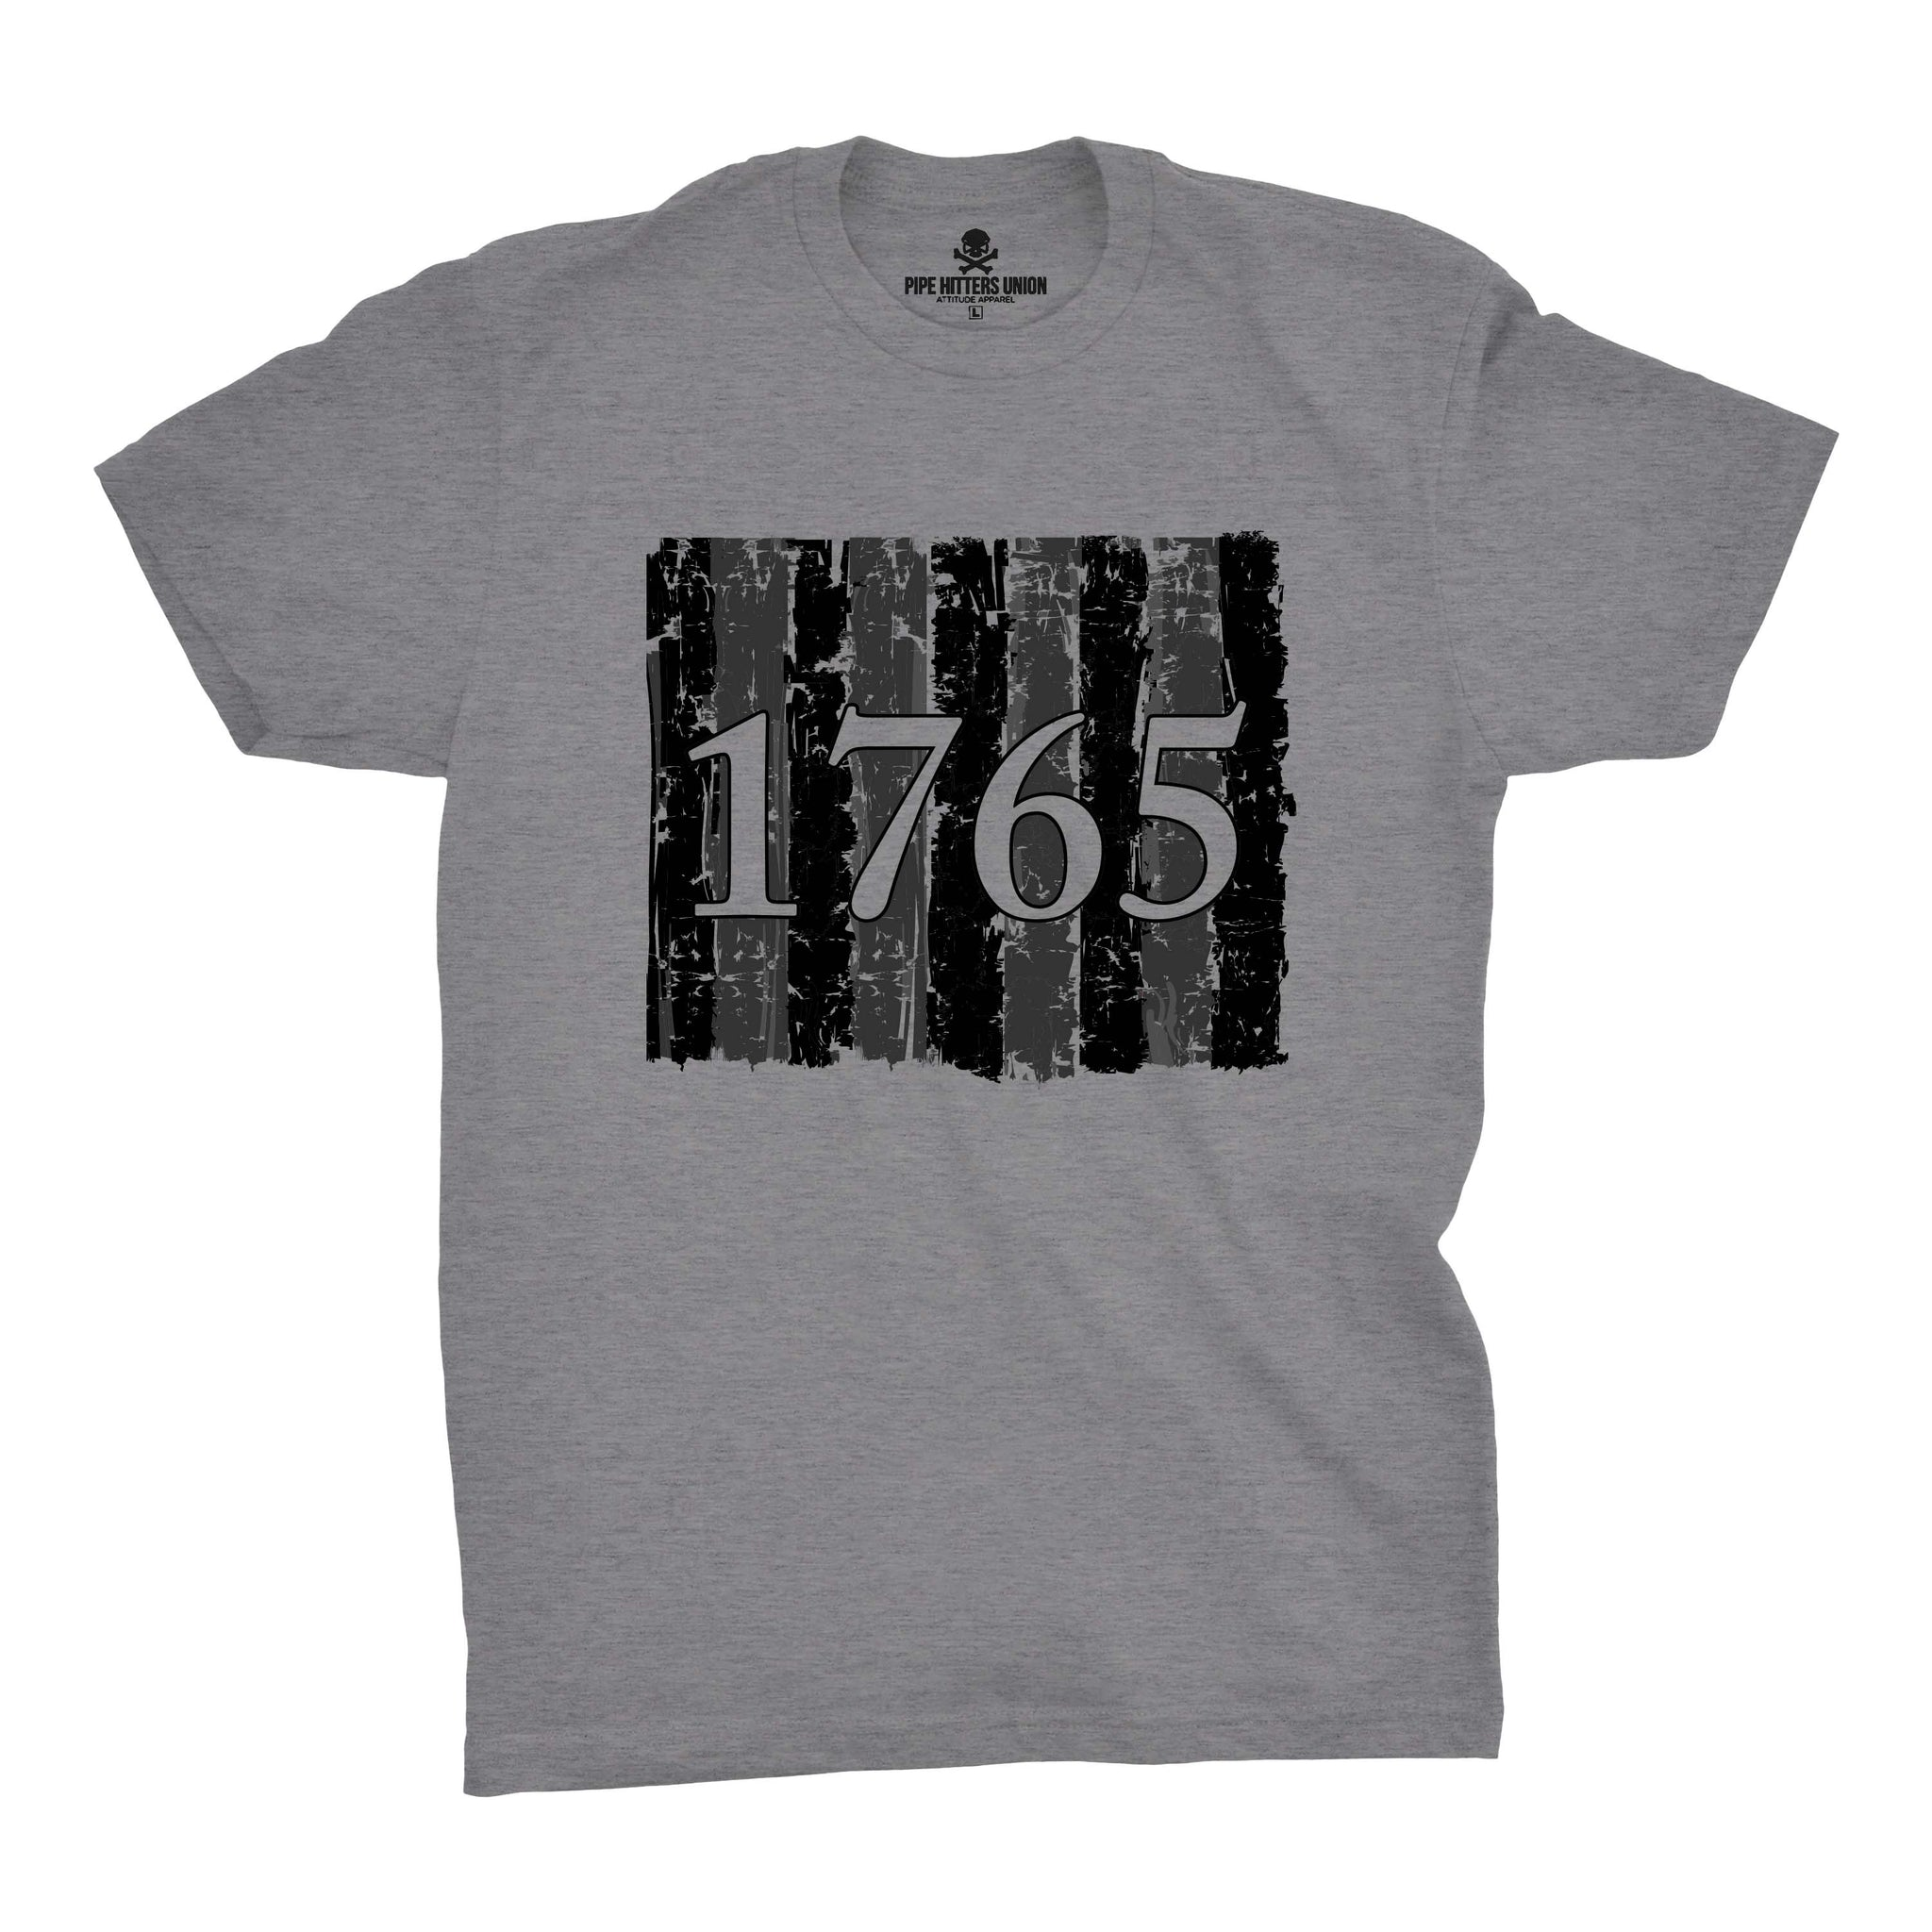 Sons of Liberty - 1765 - Grey - T-Shirts - Pipe Hitters Union